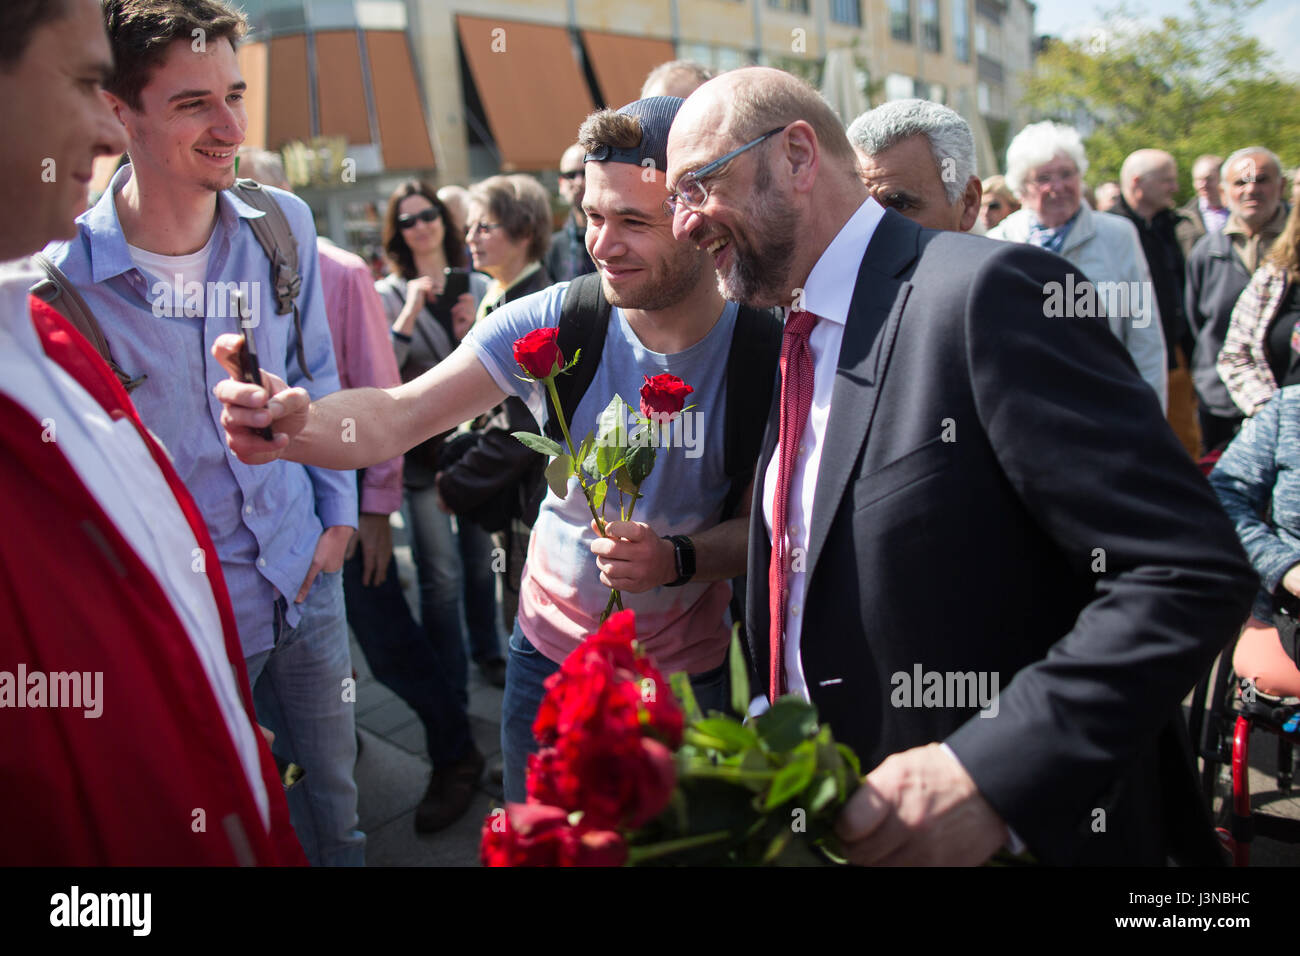 Mulheim and der Ruhr, Germany. 6th May, 2017. dpatop - The SPD's candidate for Chancellor, Martin Schulz (R), - Stock Image